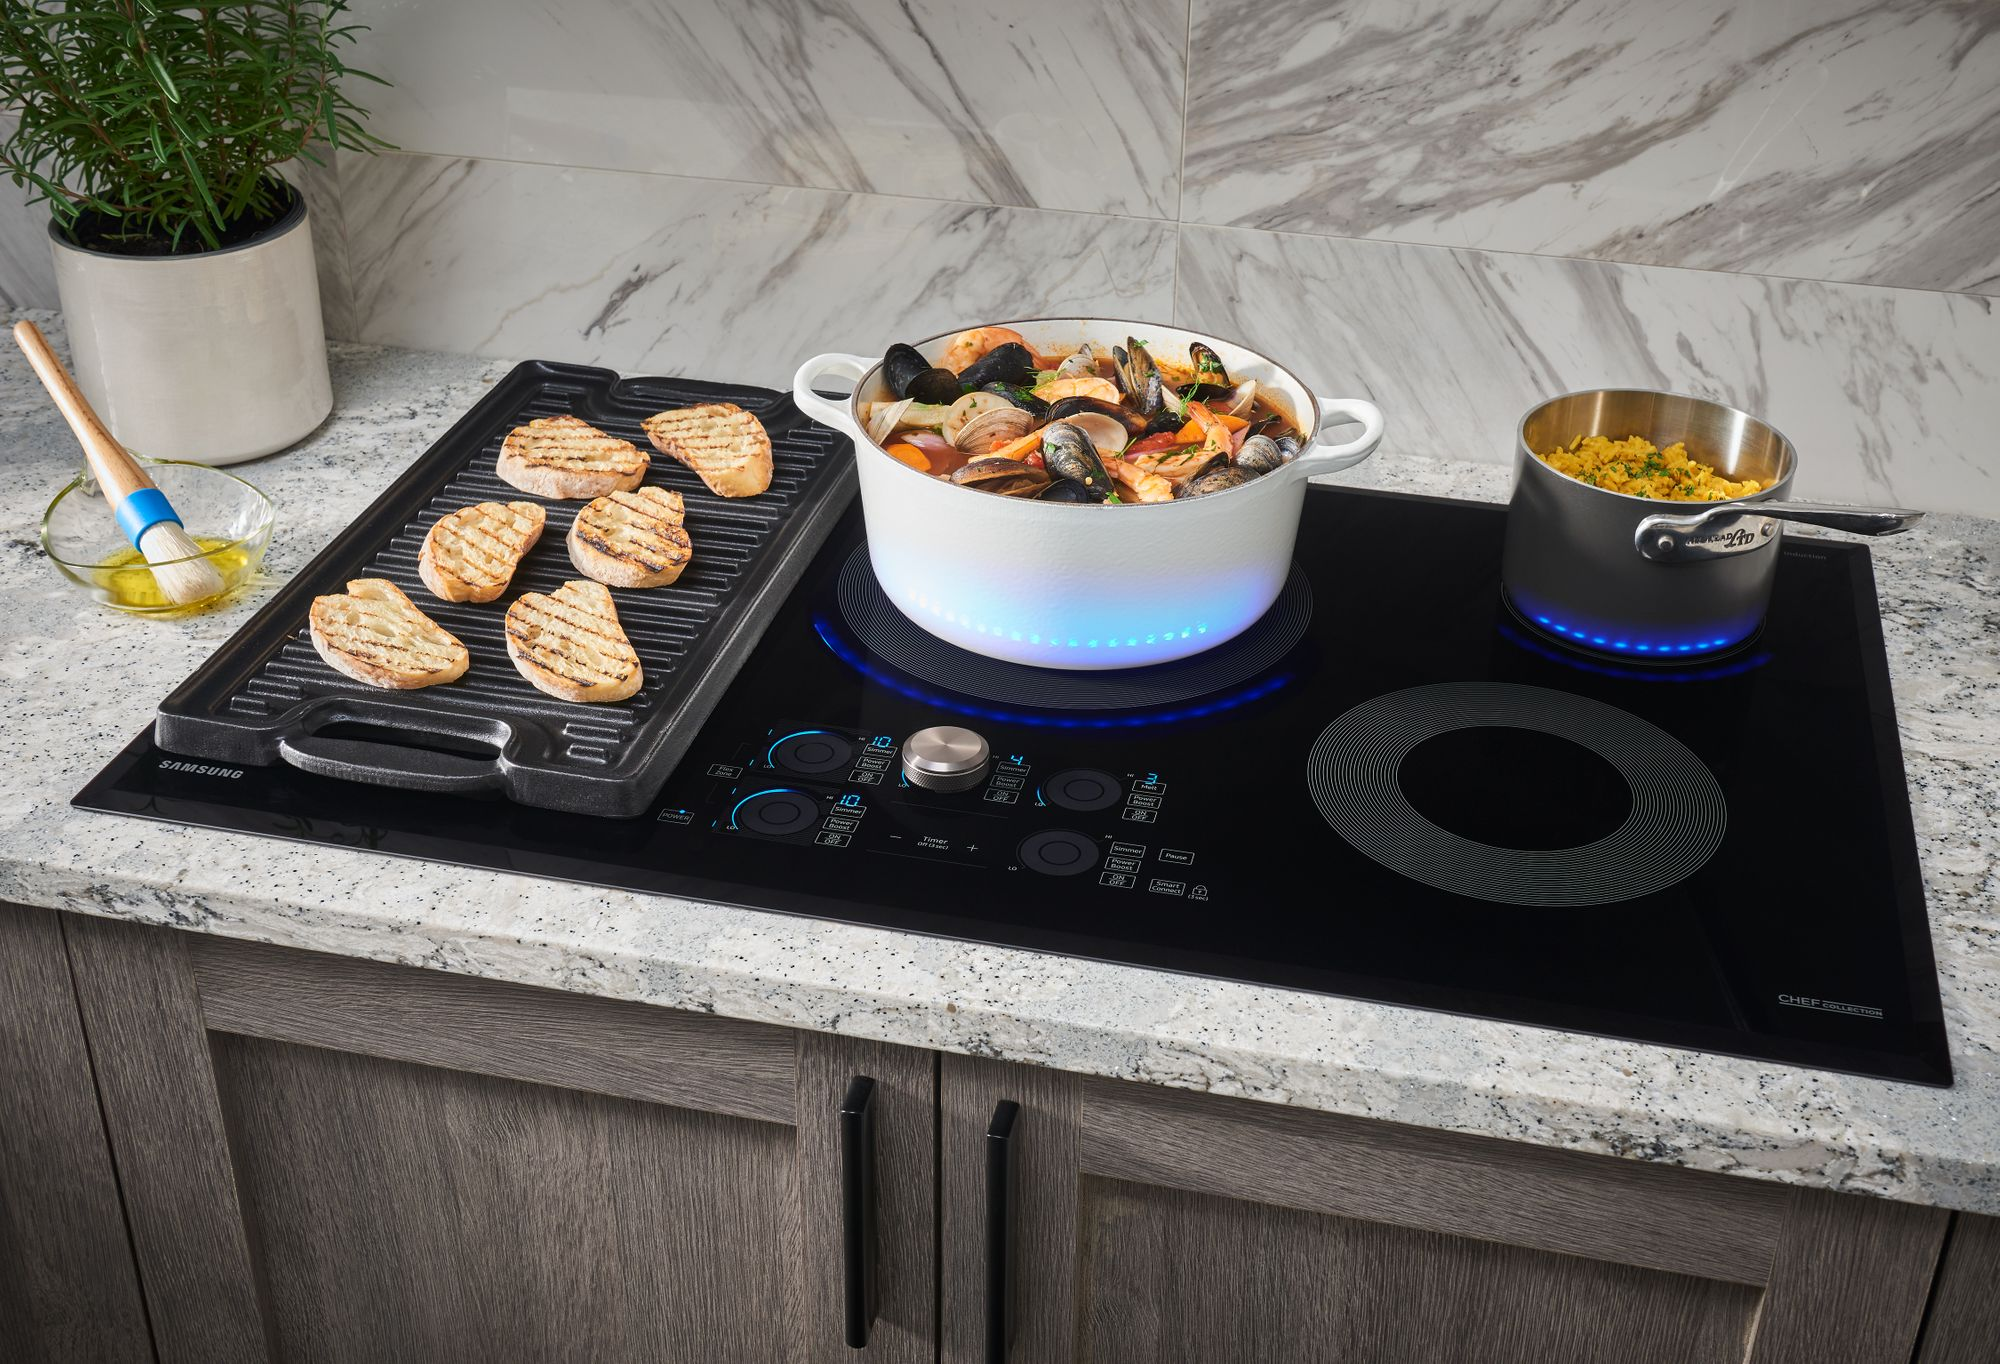 Cooktop_Electric_CC_NZ30M9880UB_Lifestyle_Flex_Zone_Food_Pots_Black_Matte